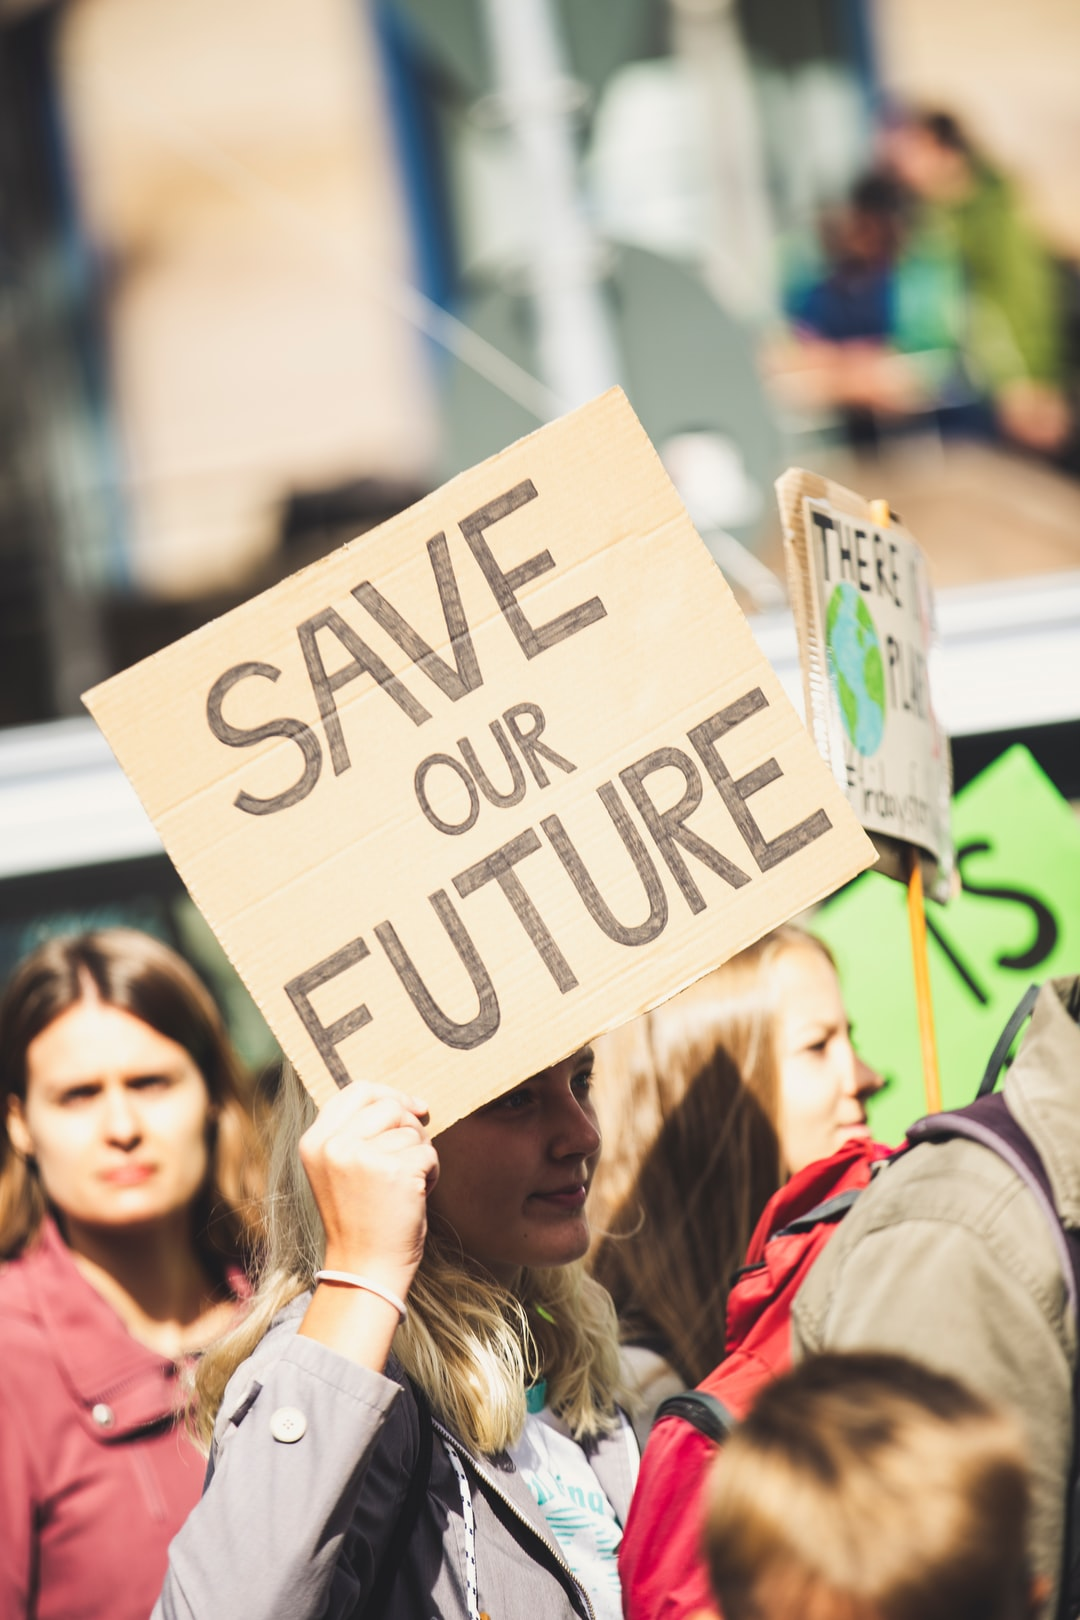 SAVE OUR FUTURE. Global climate change strike - No Planet B - 09-20-2019